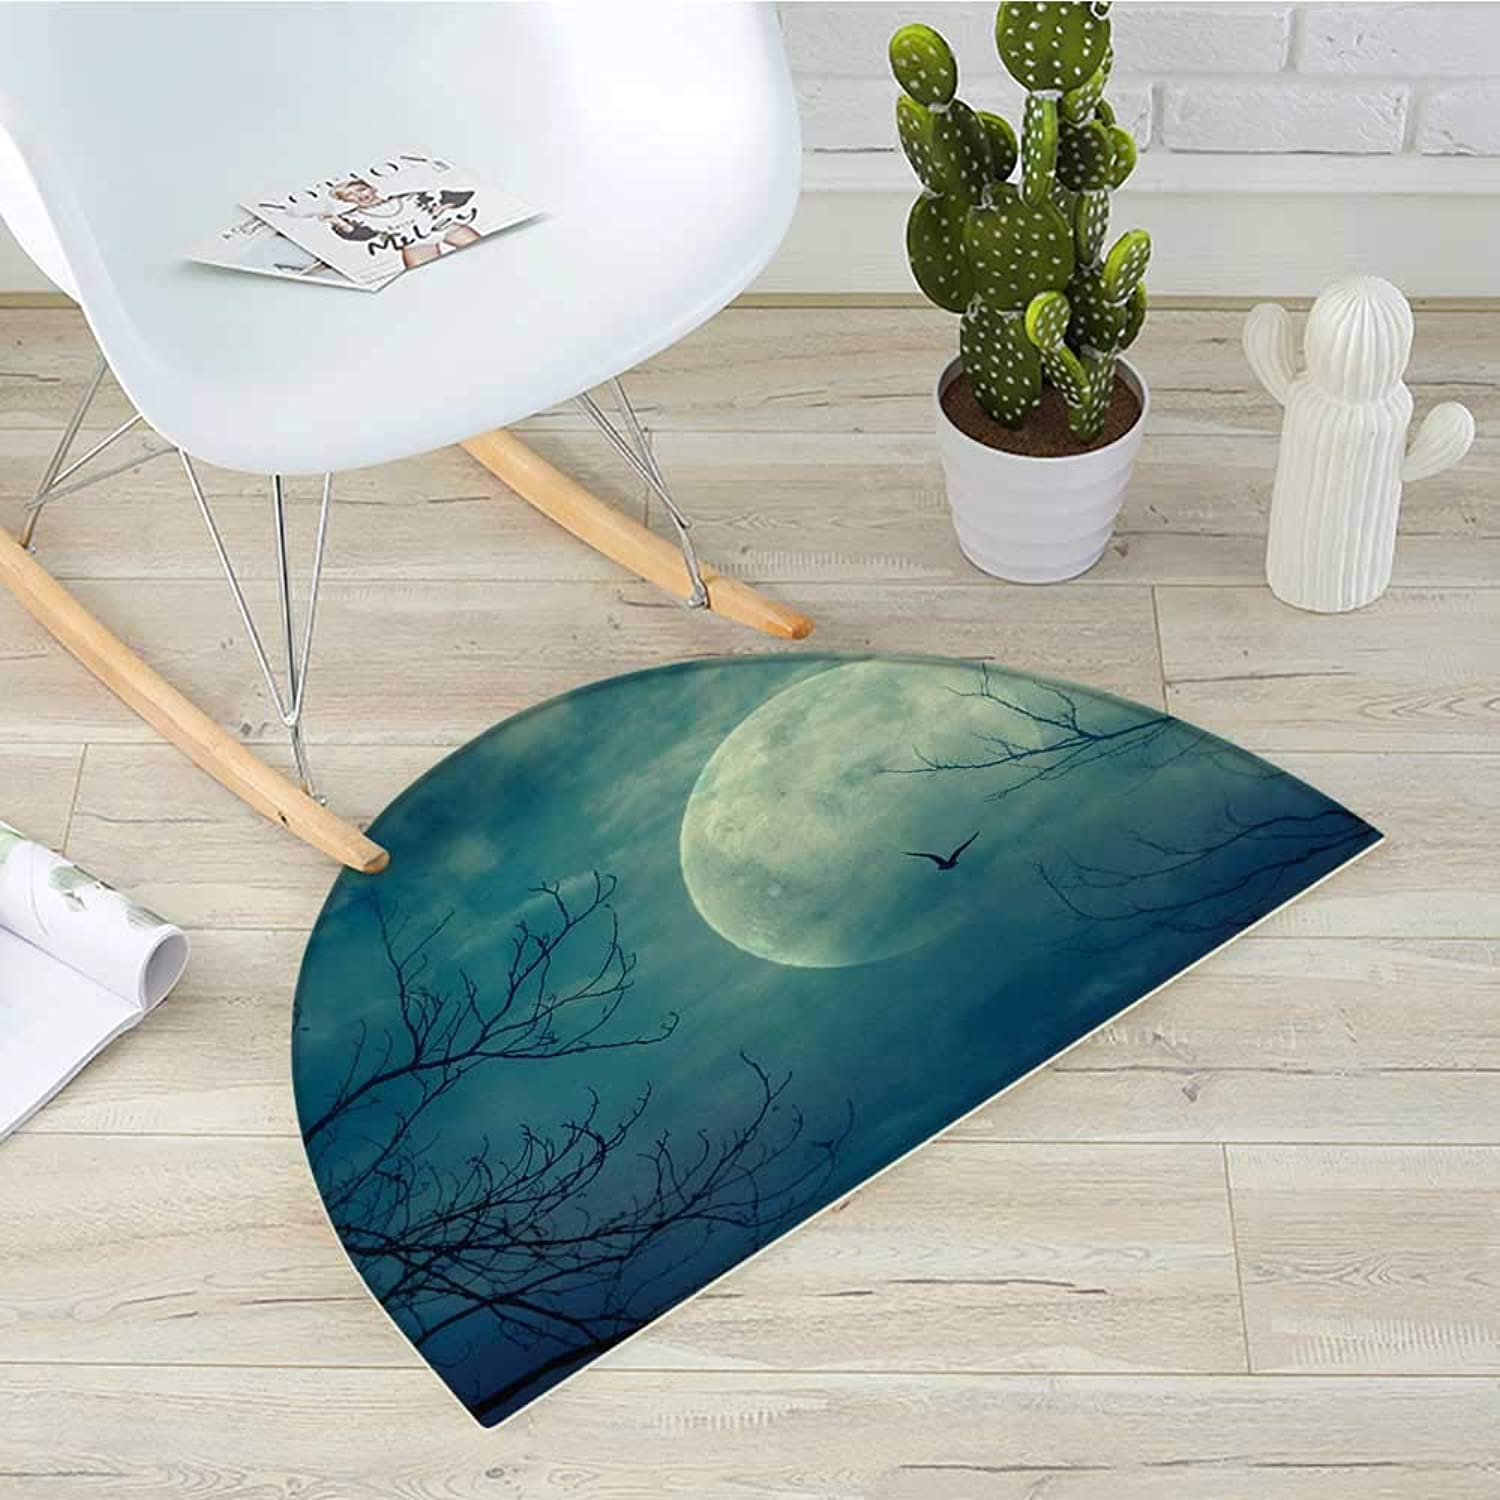 Horror House Semicircular CushionHalloween with Full Moon in Sky and Dead Tree Branches Evil Haunted Forest Print Entry Door Mat H 39.3  xD 59  bluee